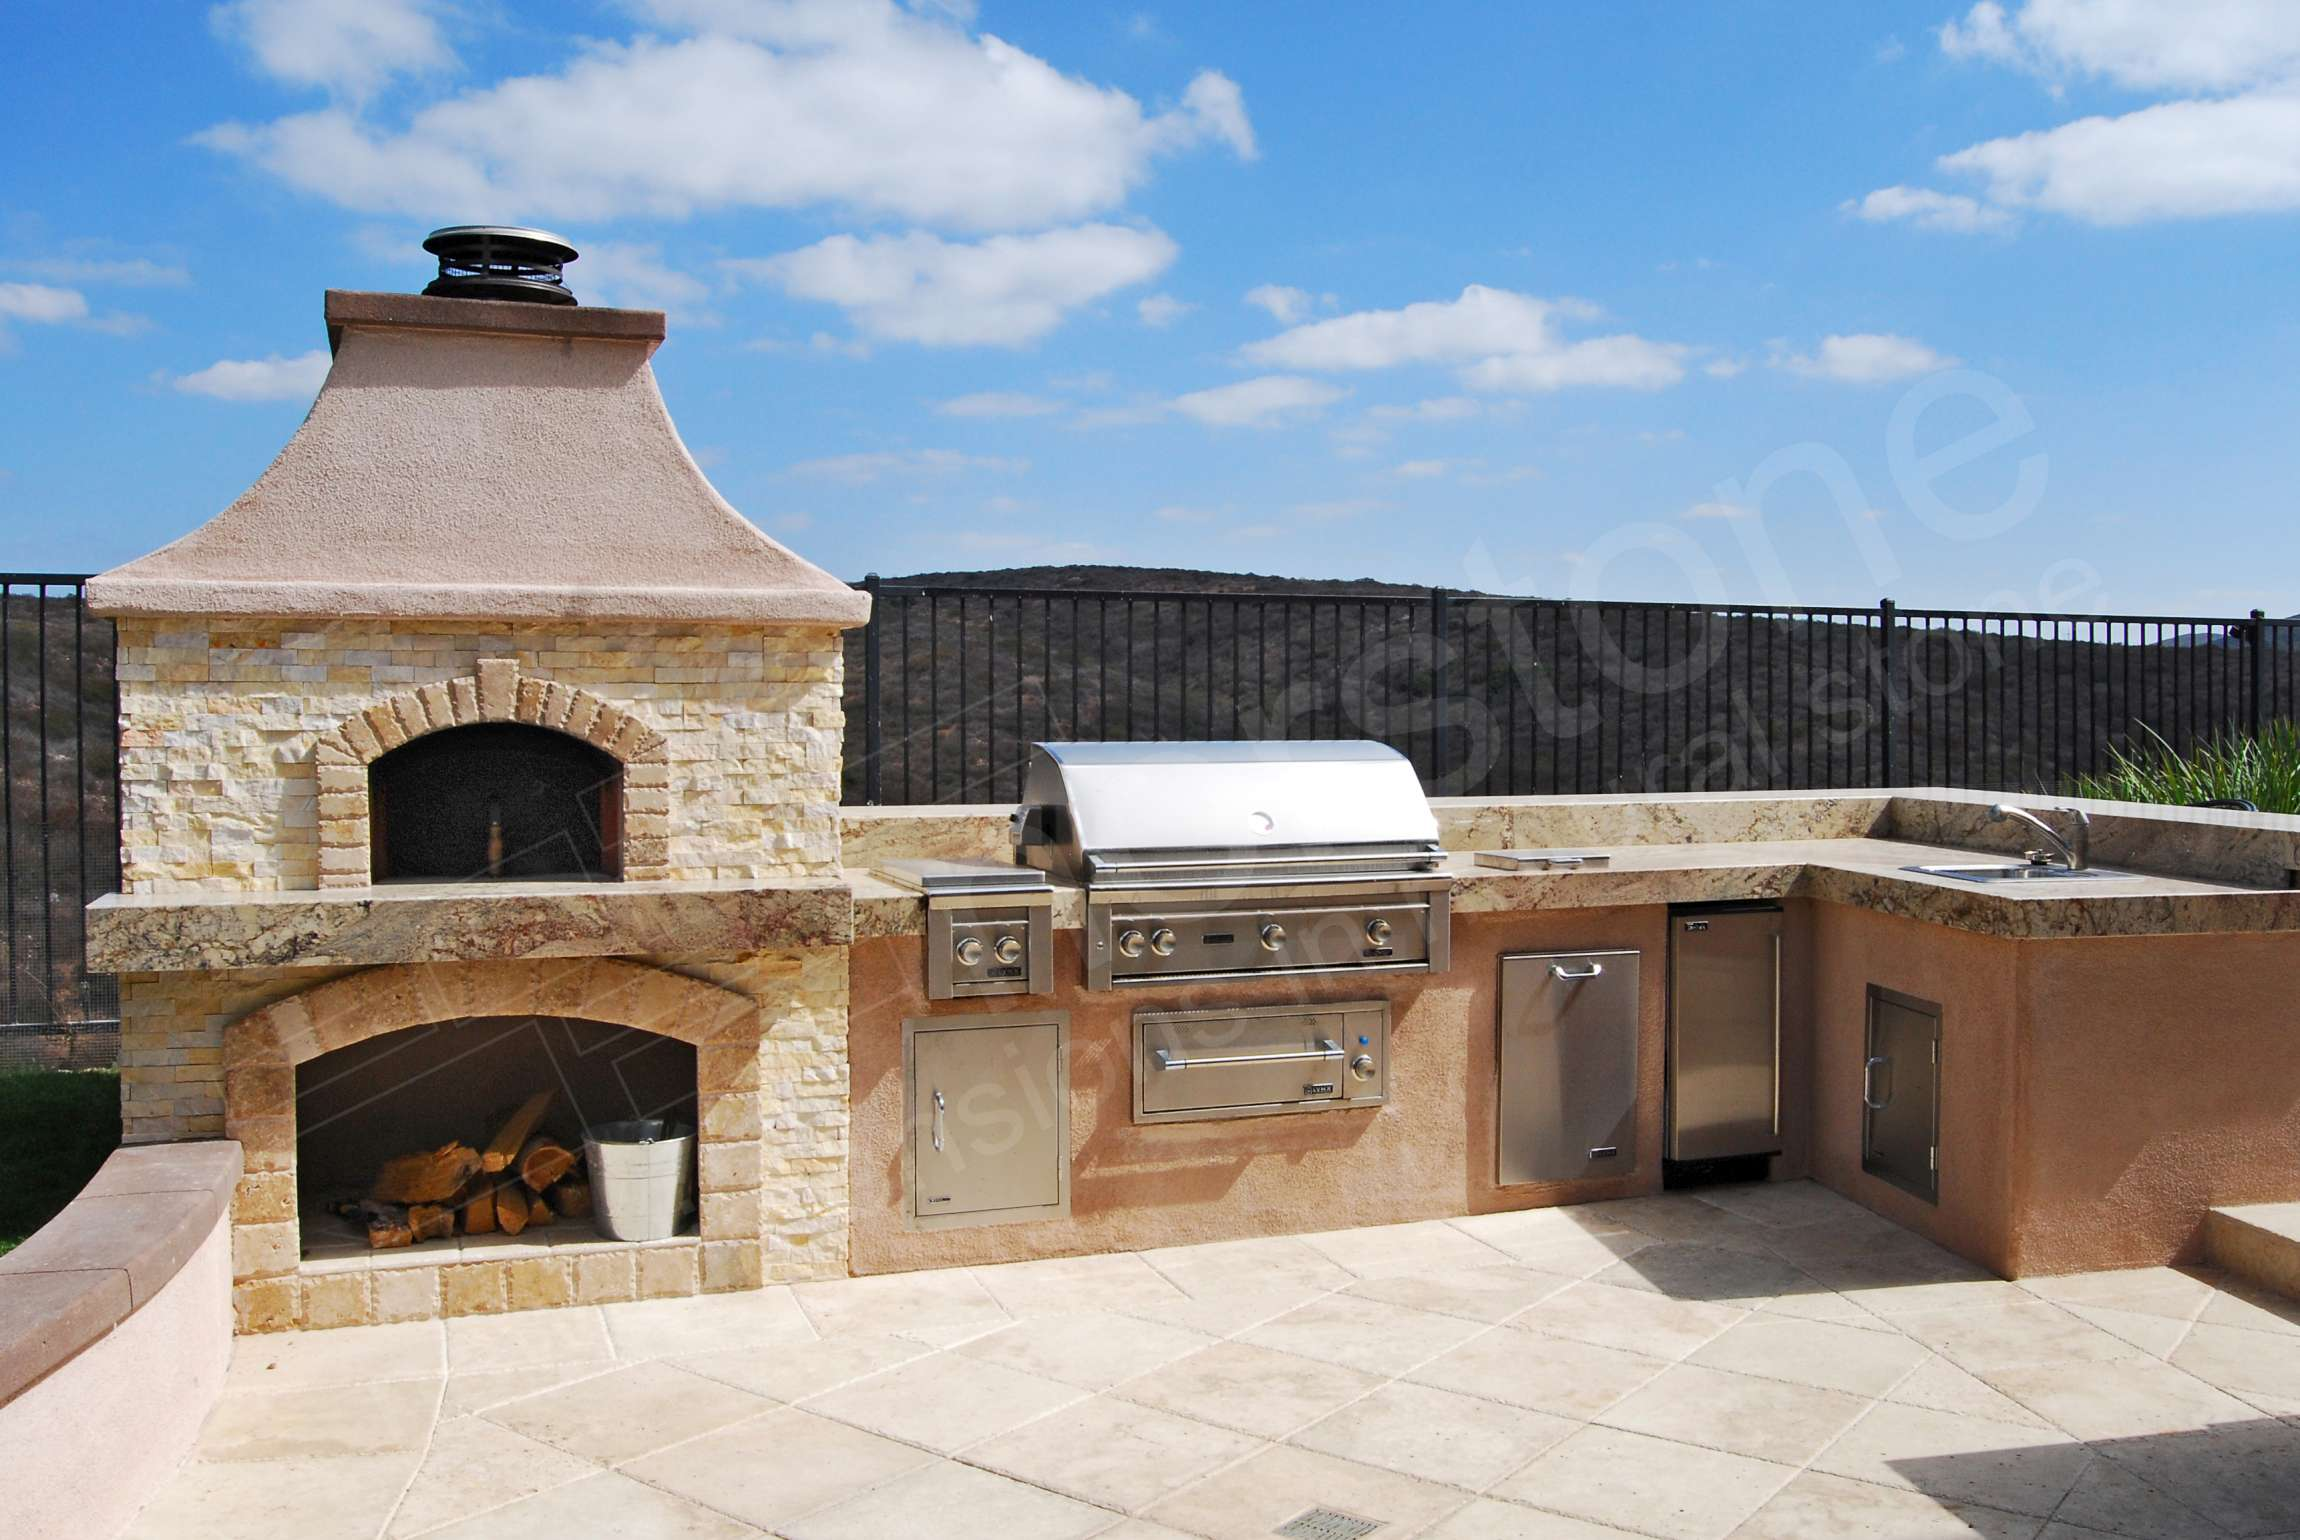 Norstone Ivory Stacked Stone Rock Panels on Outdoor Backyard Pizza Oven